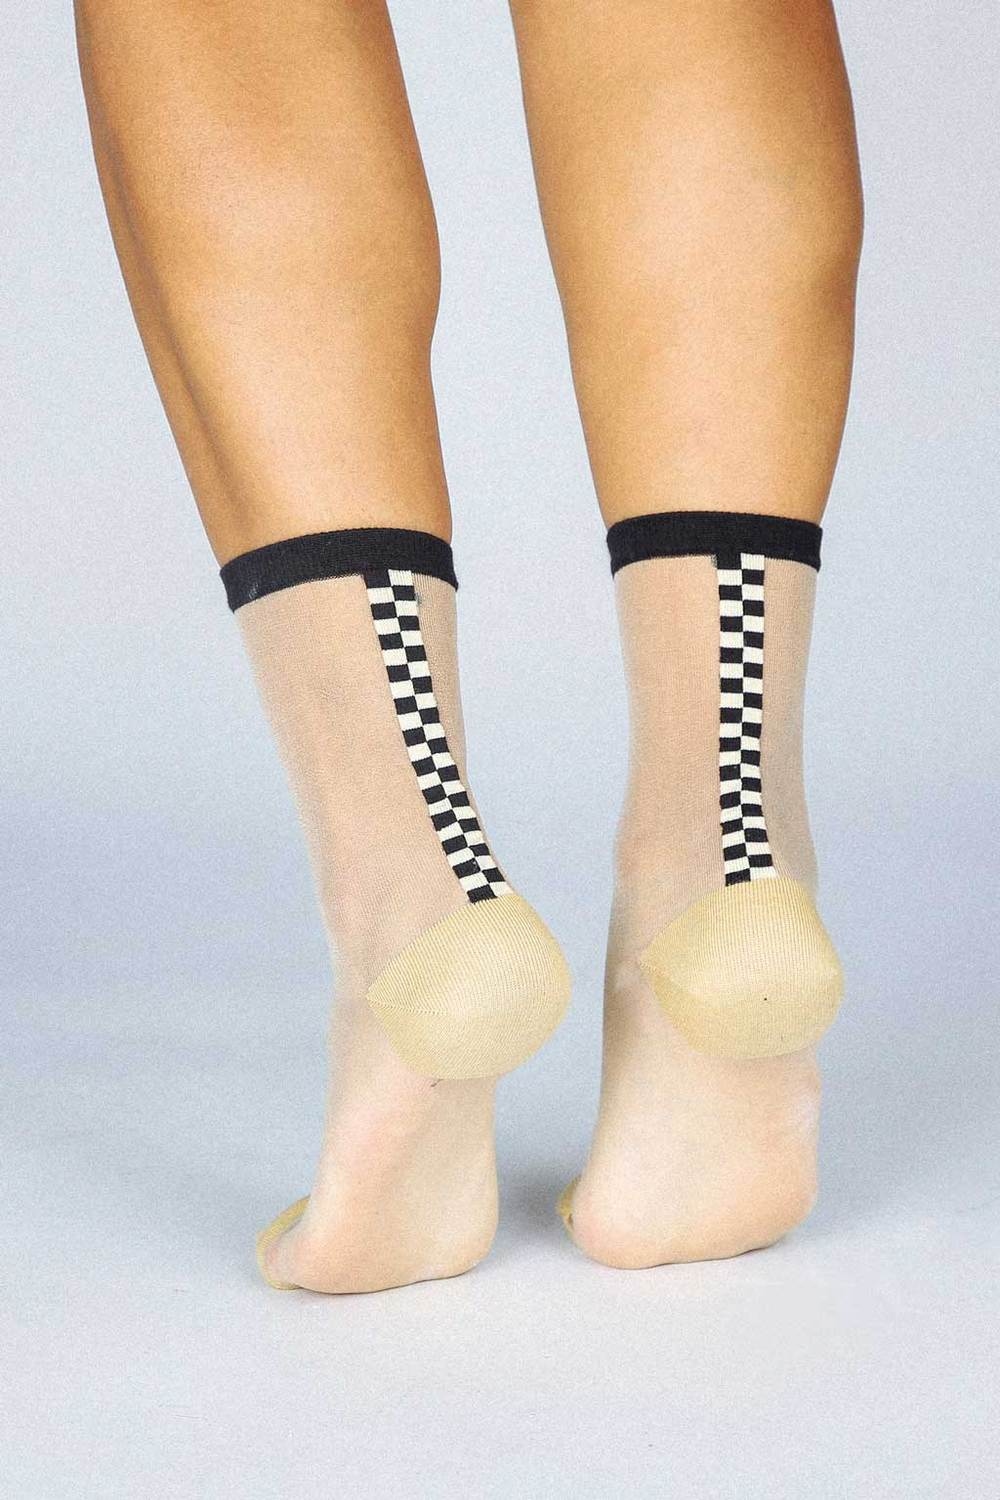 Tailored Union Chic Sheer socks- Nude